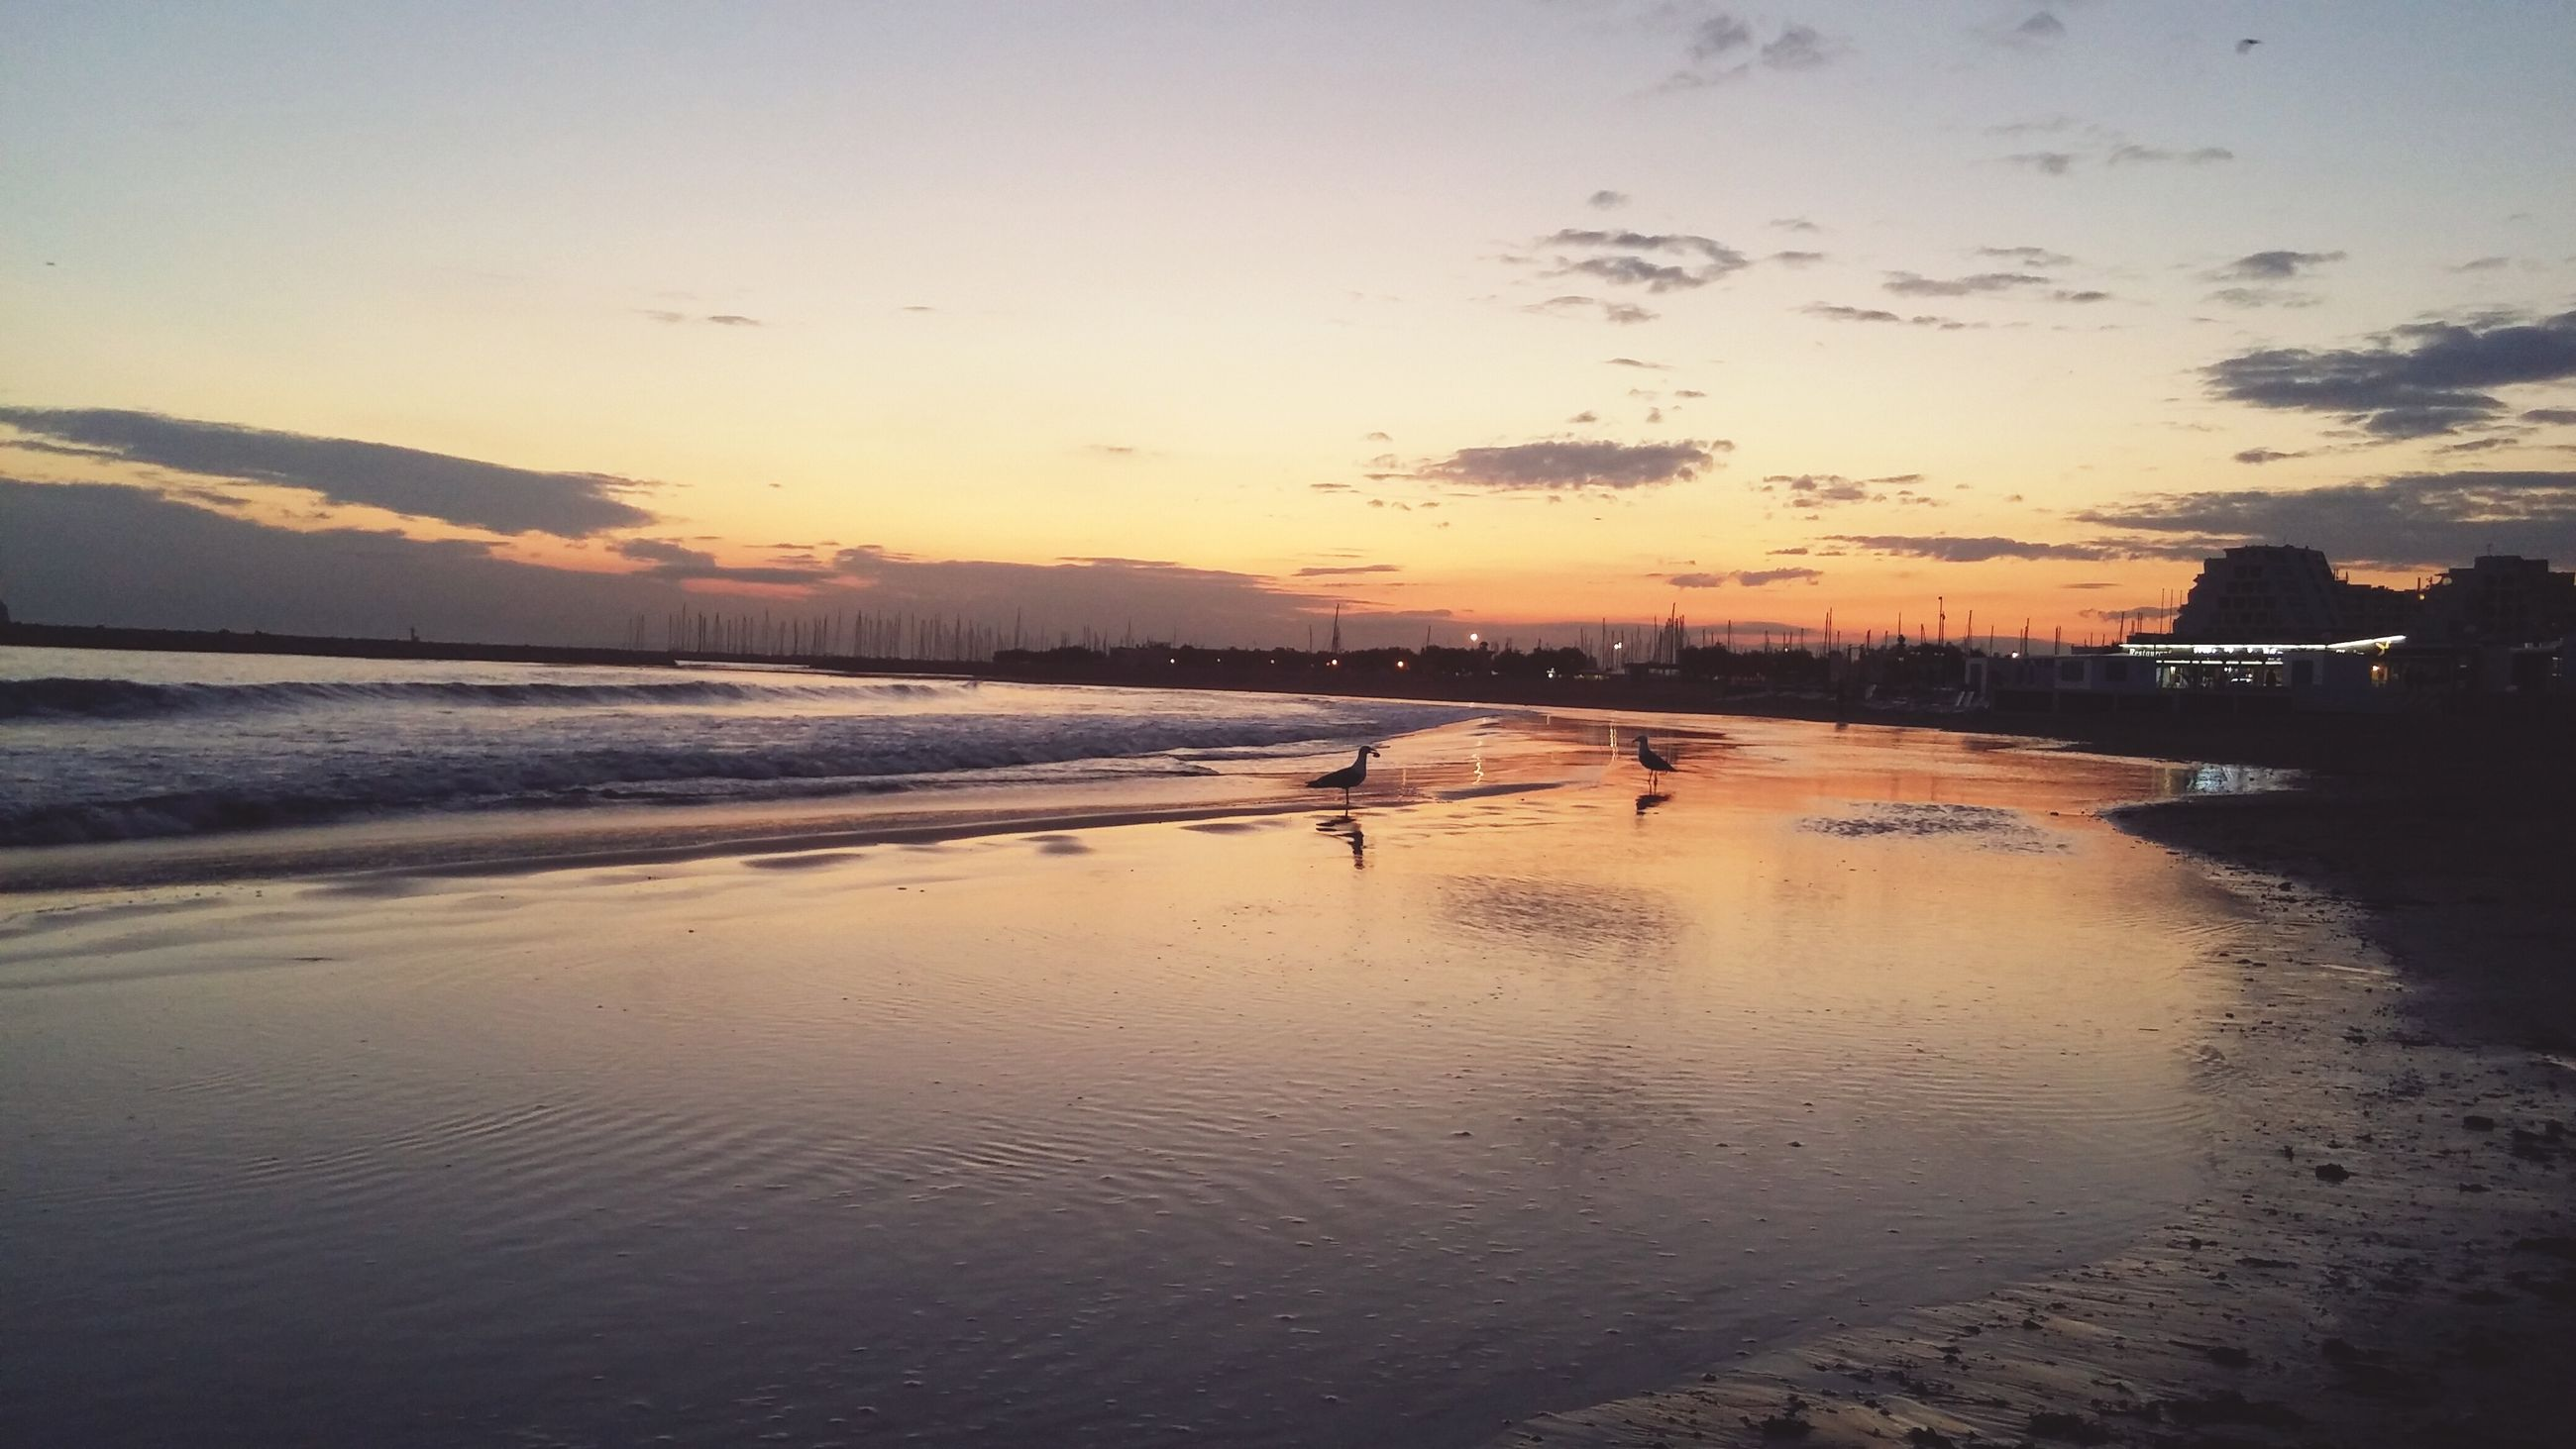 beach, water, sea, sunset, sand, shore, sky, scenics, tranquil scene, tranquility, beauty in nature, nature, coastline, idyllic, incidental people, reflection, wave, dusk, horizon over water, outdoors